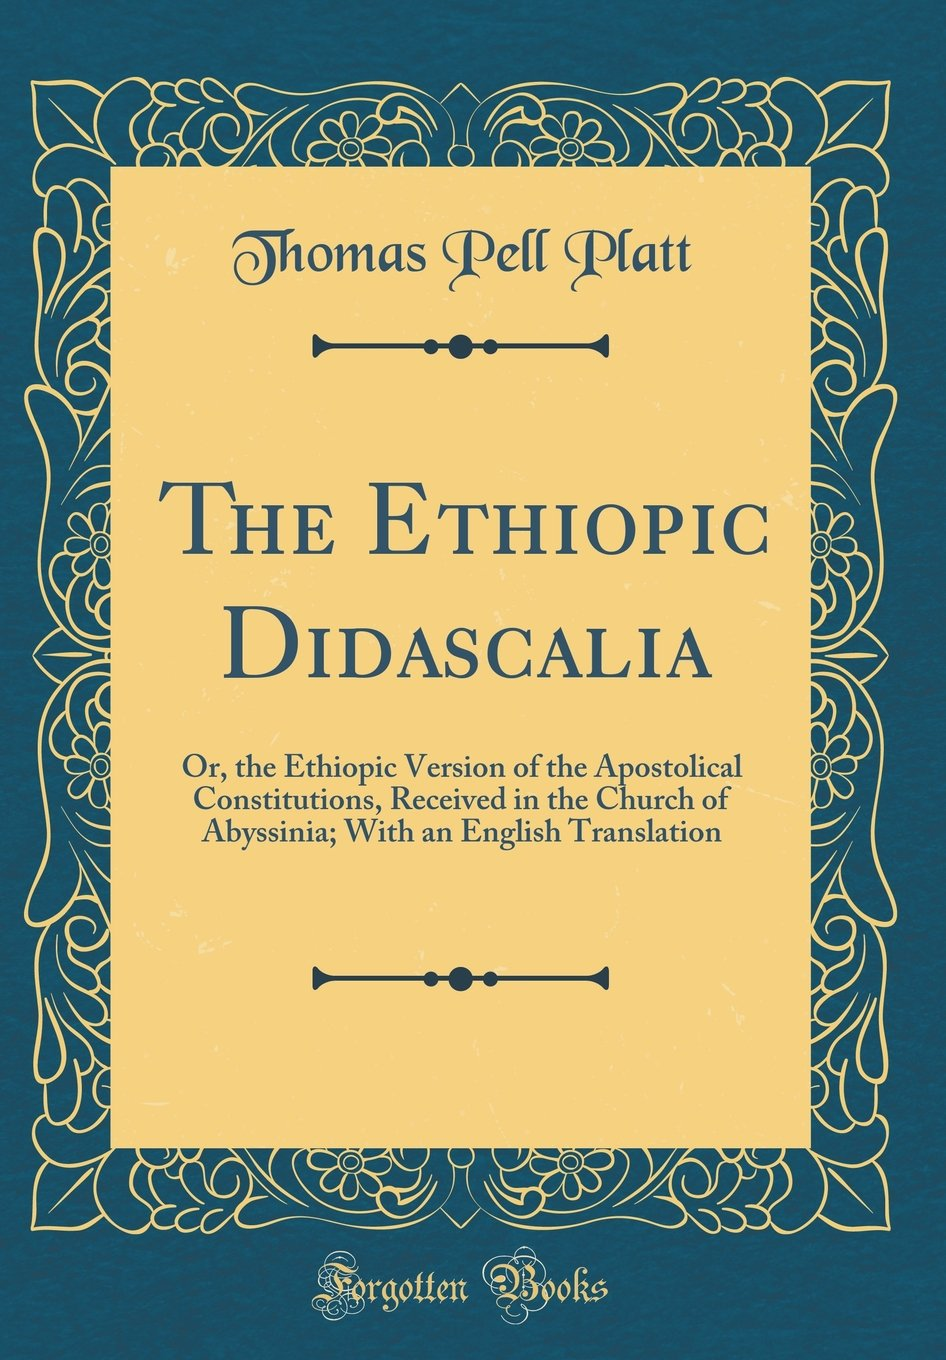 Download The Ethiopic Didascalia: Or, the Ethiopic Version of the Apostolical Constitutions, Received in the Church of Abyssinia; With an English Translation (Classic Reprint) pdf